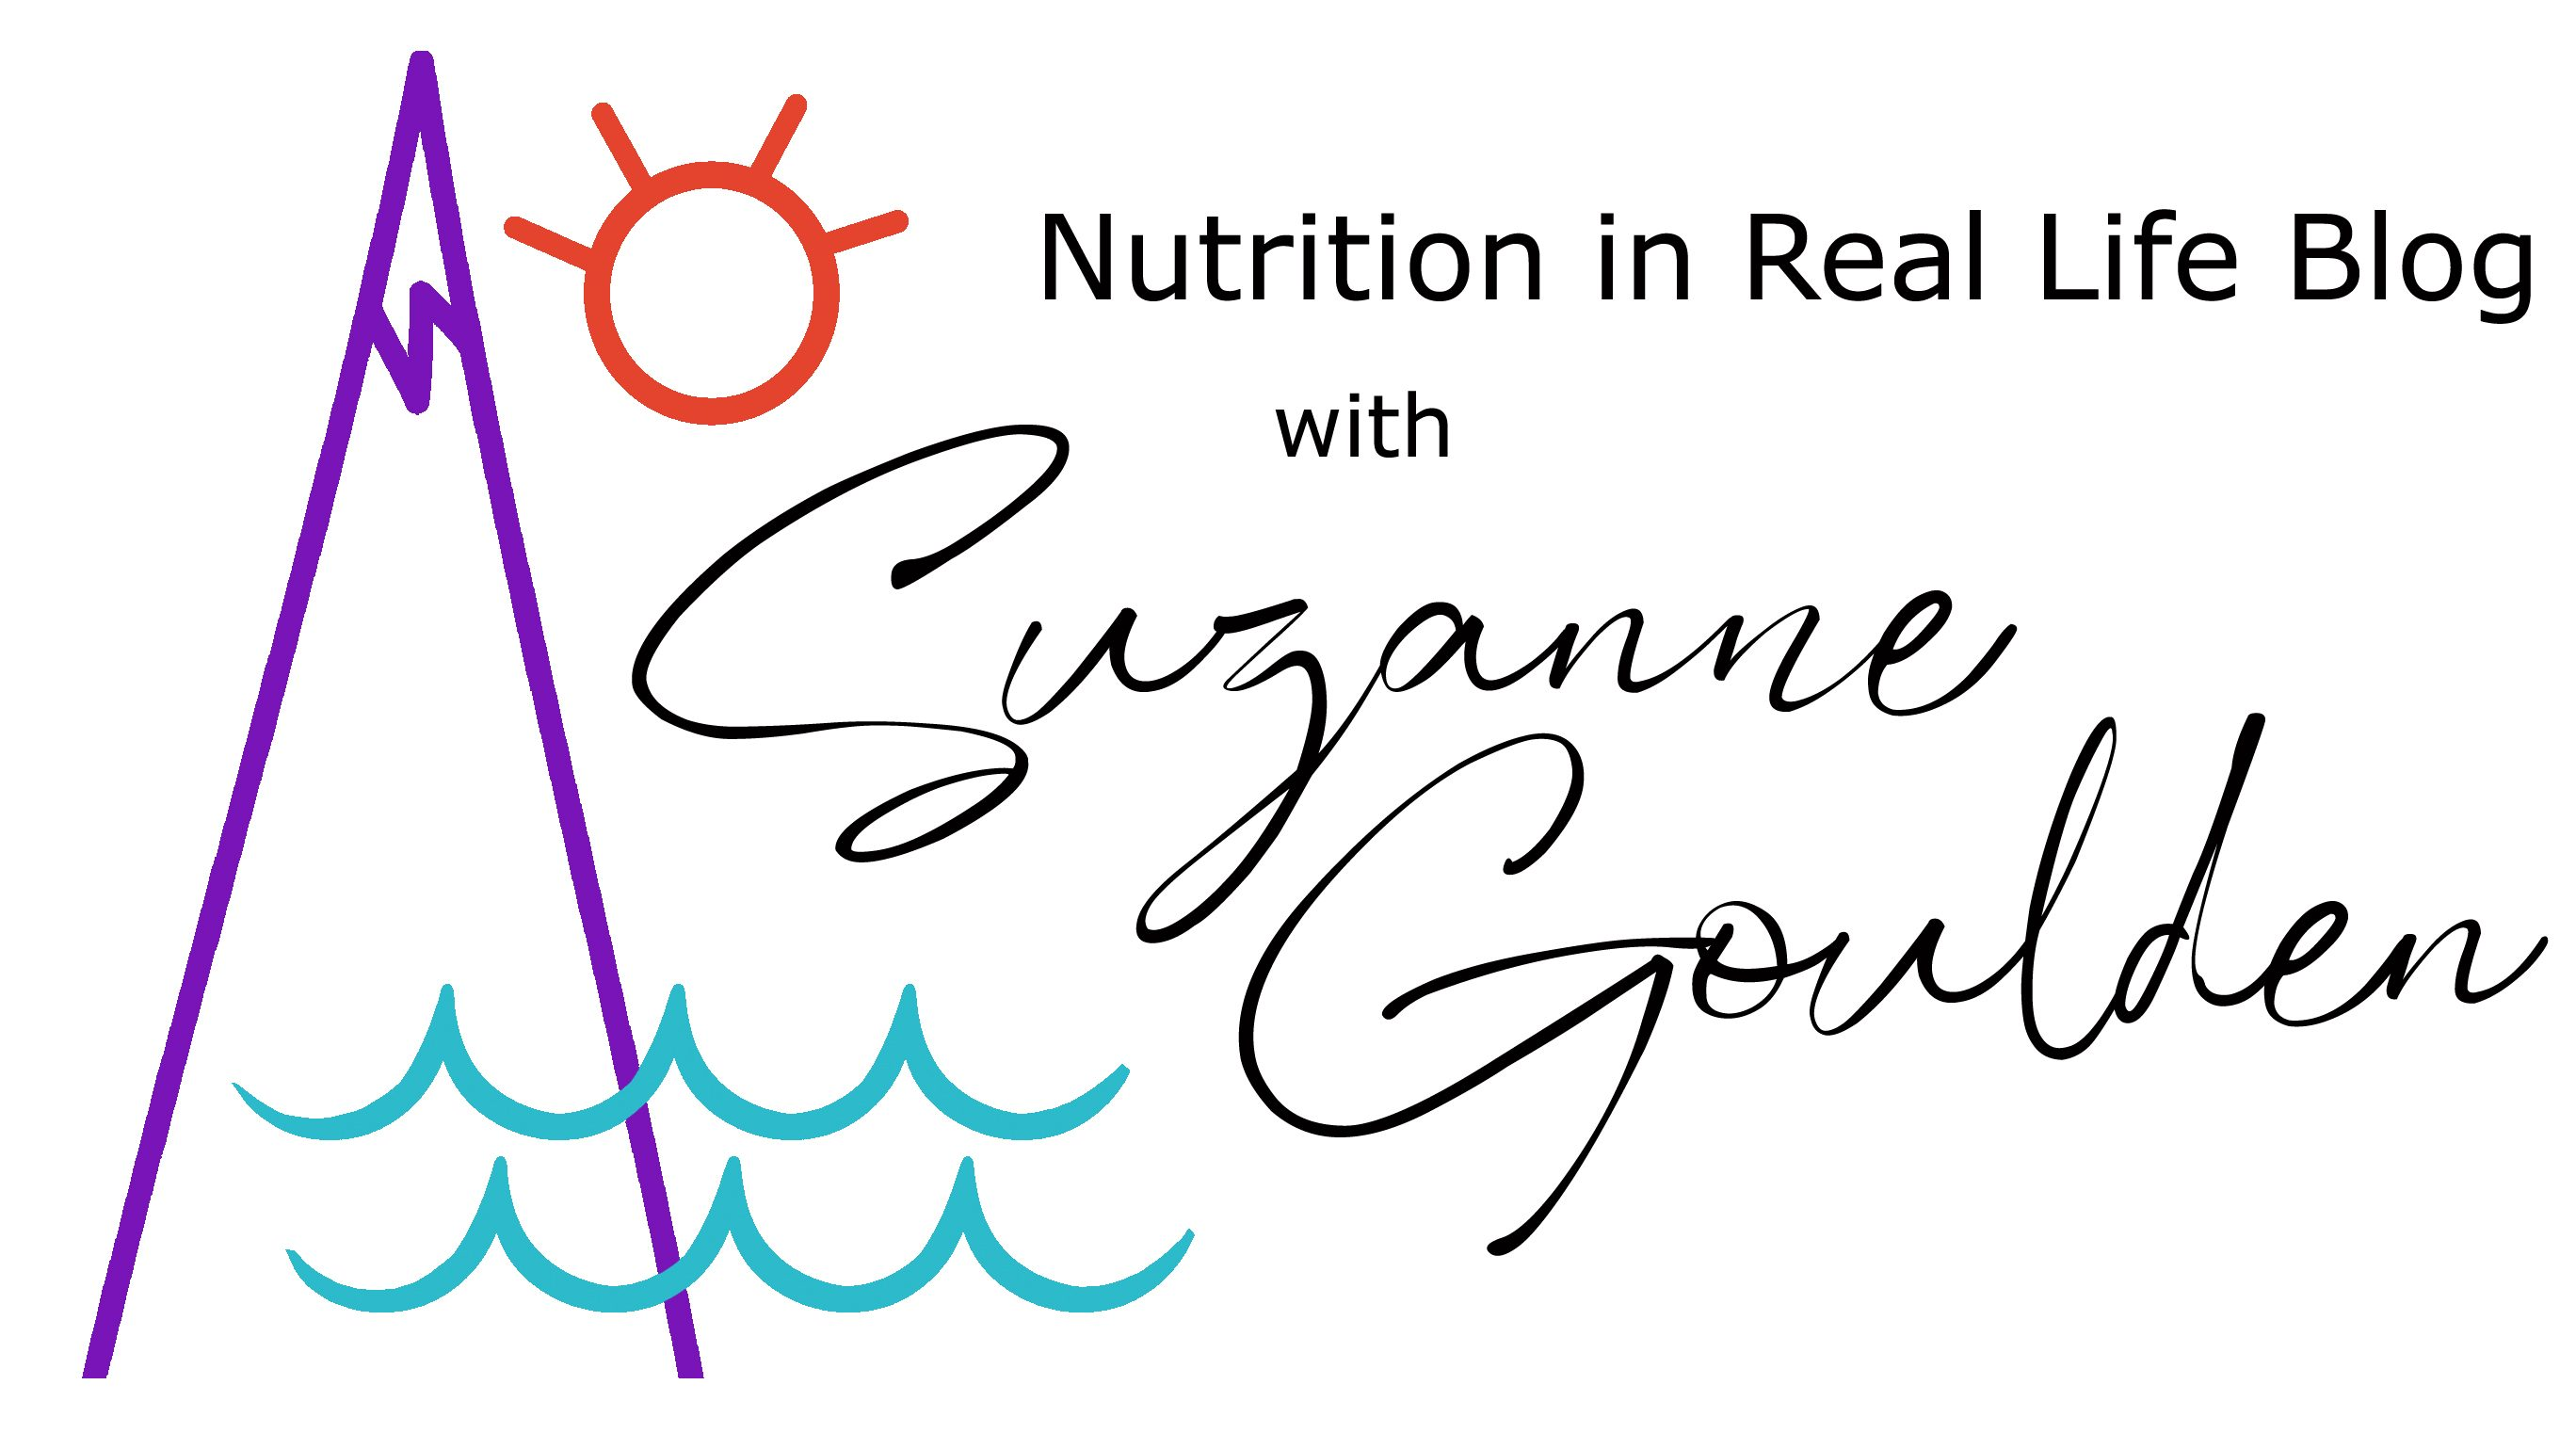 Nutrition in Real Life Blog with Suzanne Goulden